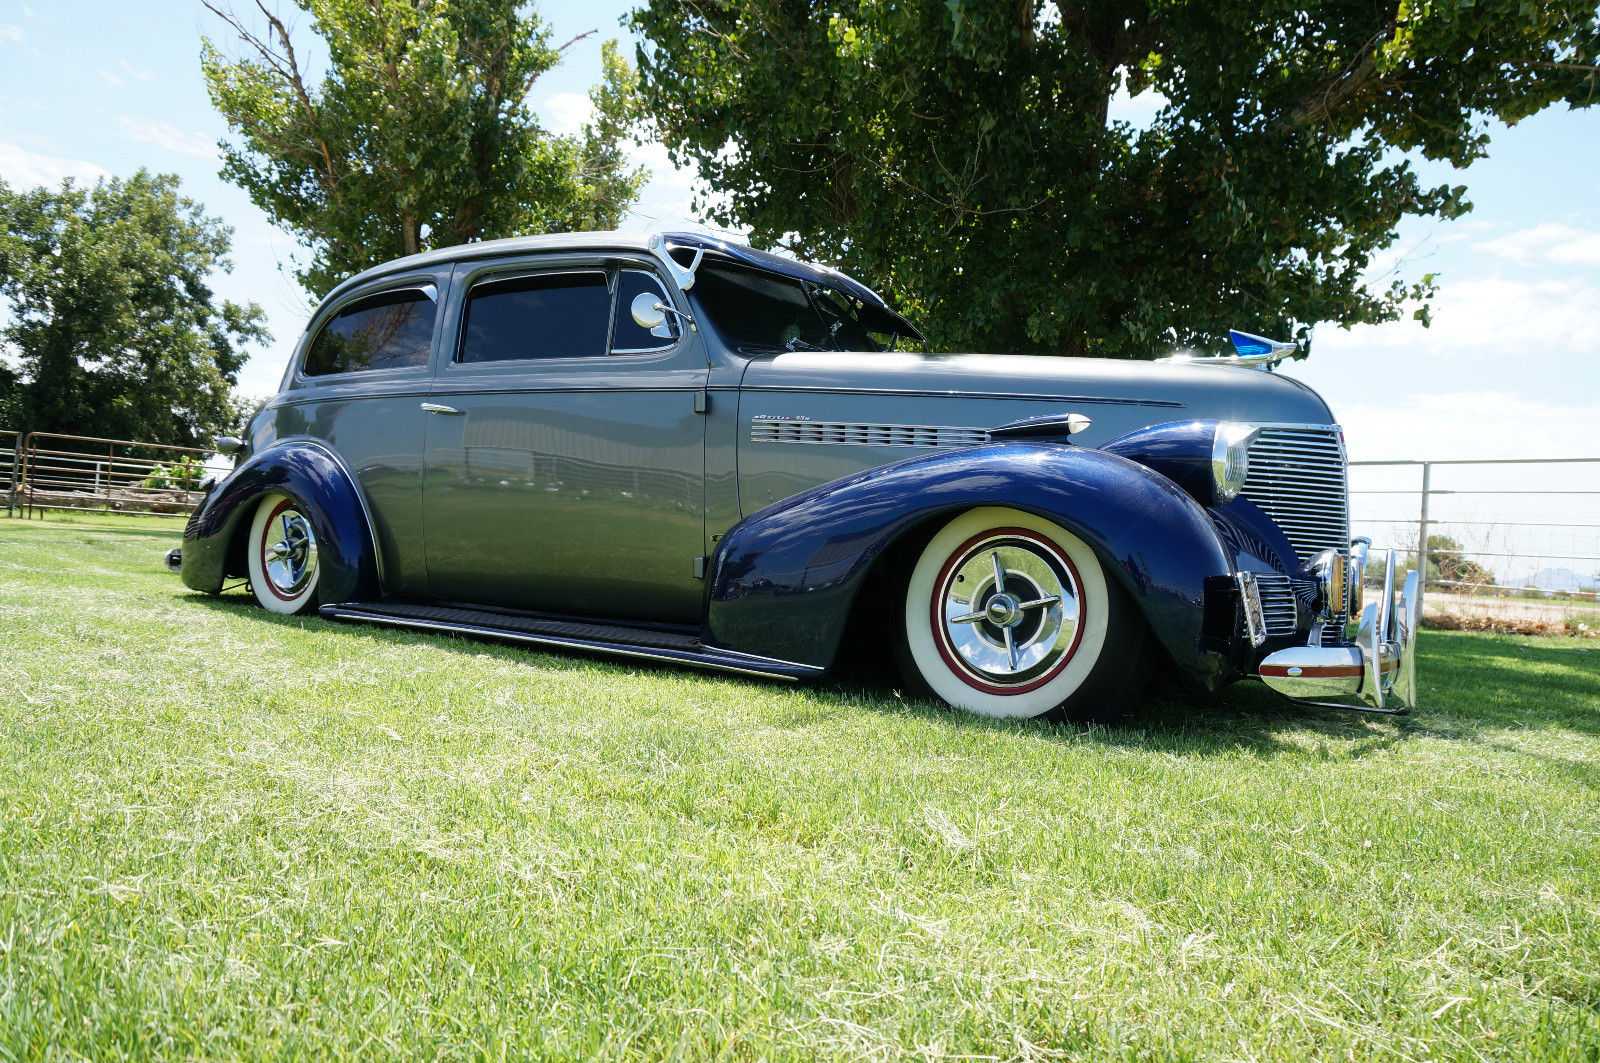 1939 chevy master deluxe 2 door sedan kustom bomb low for 1939 chevy 2 door sedan for sale